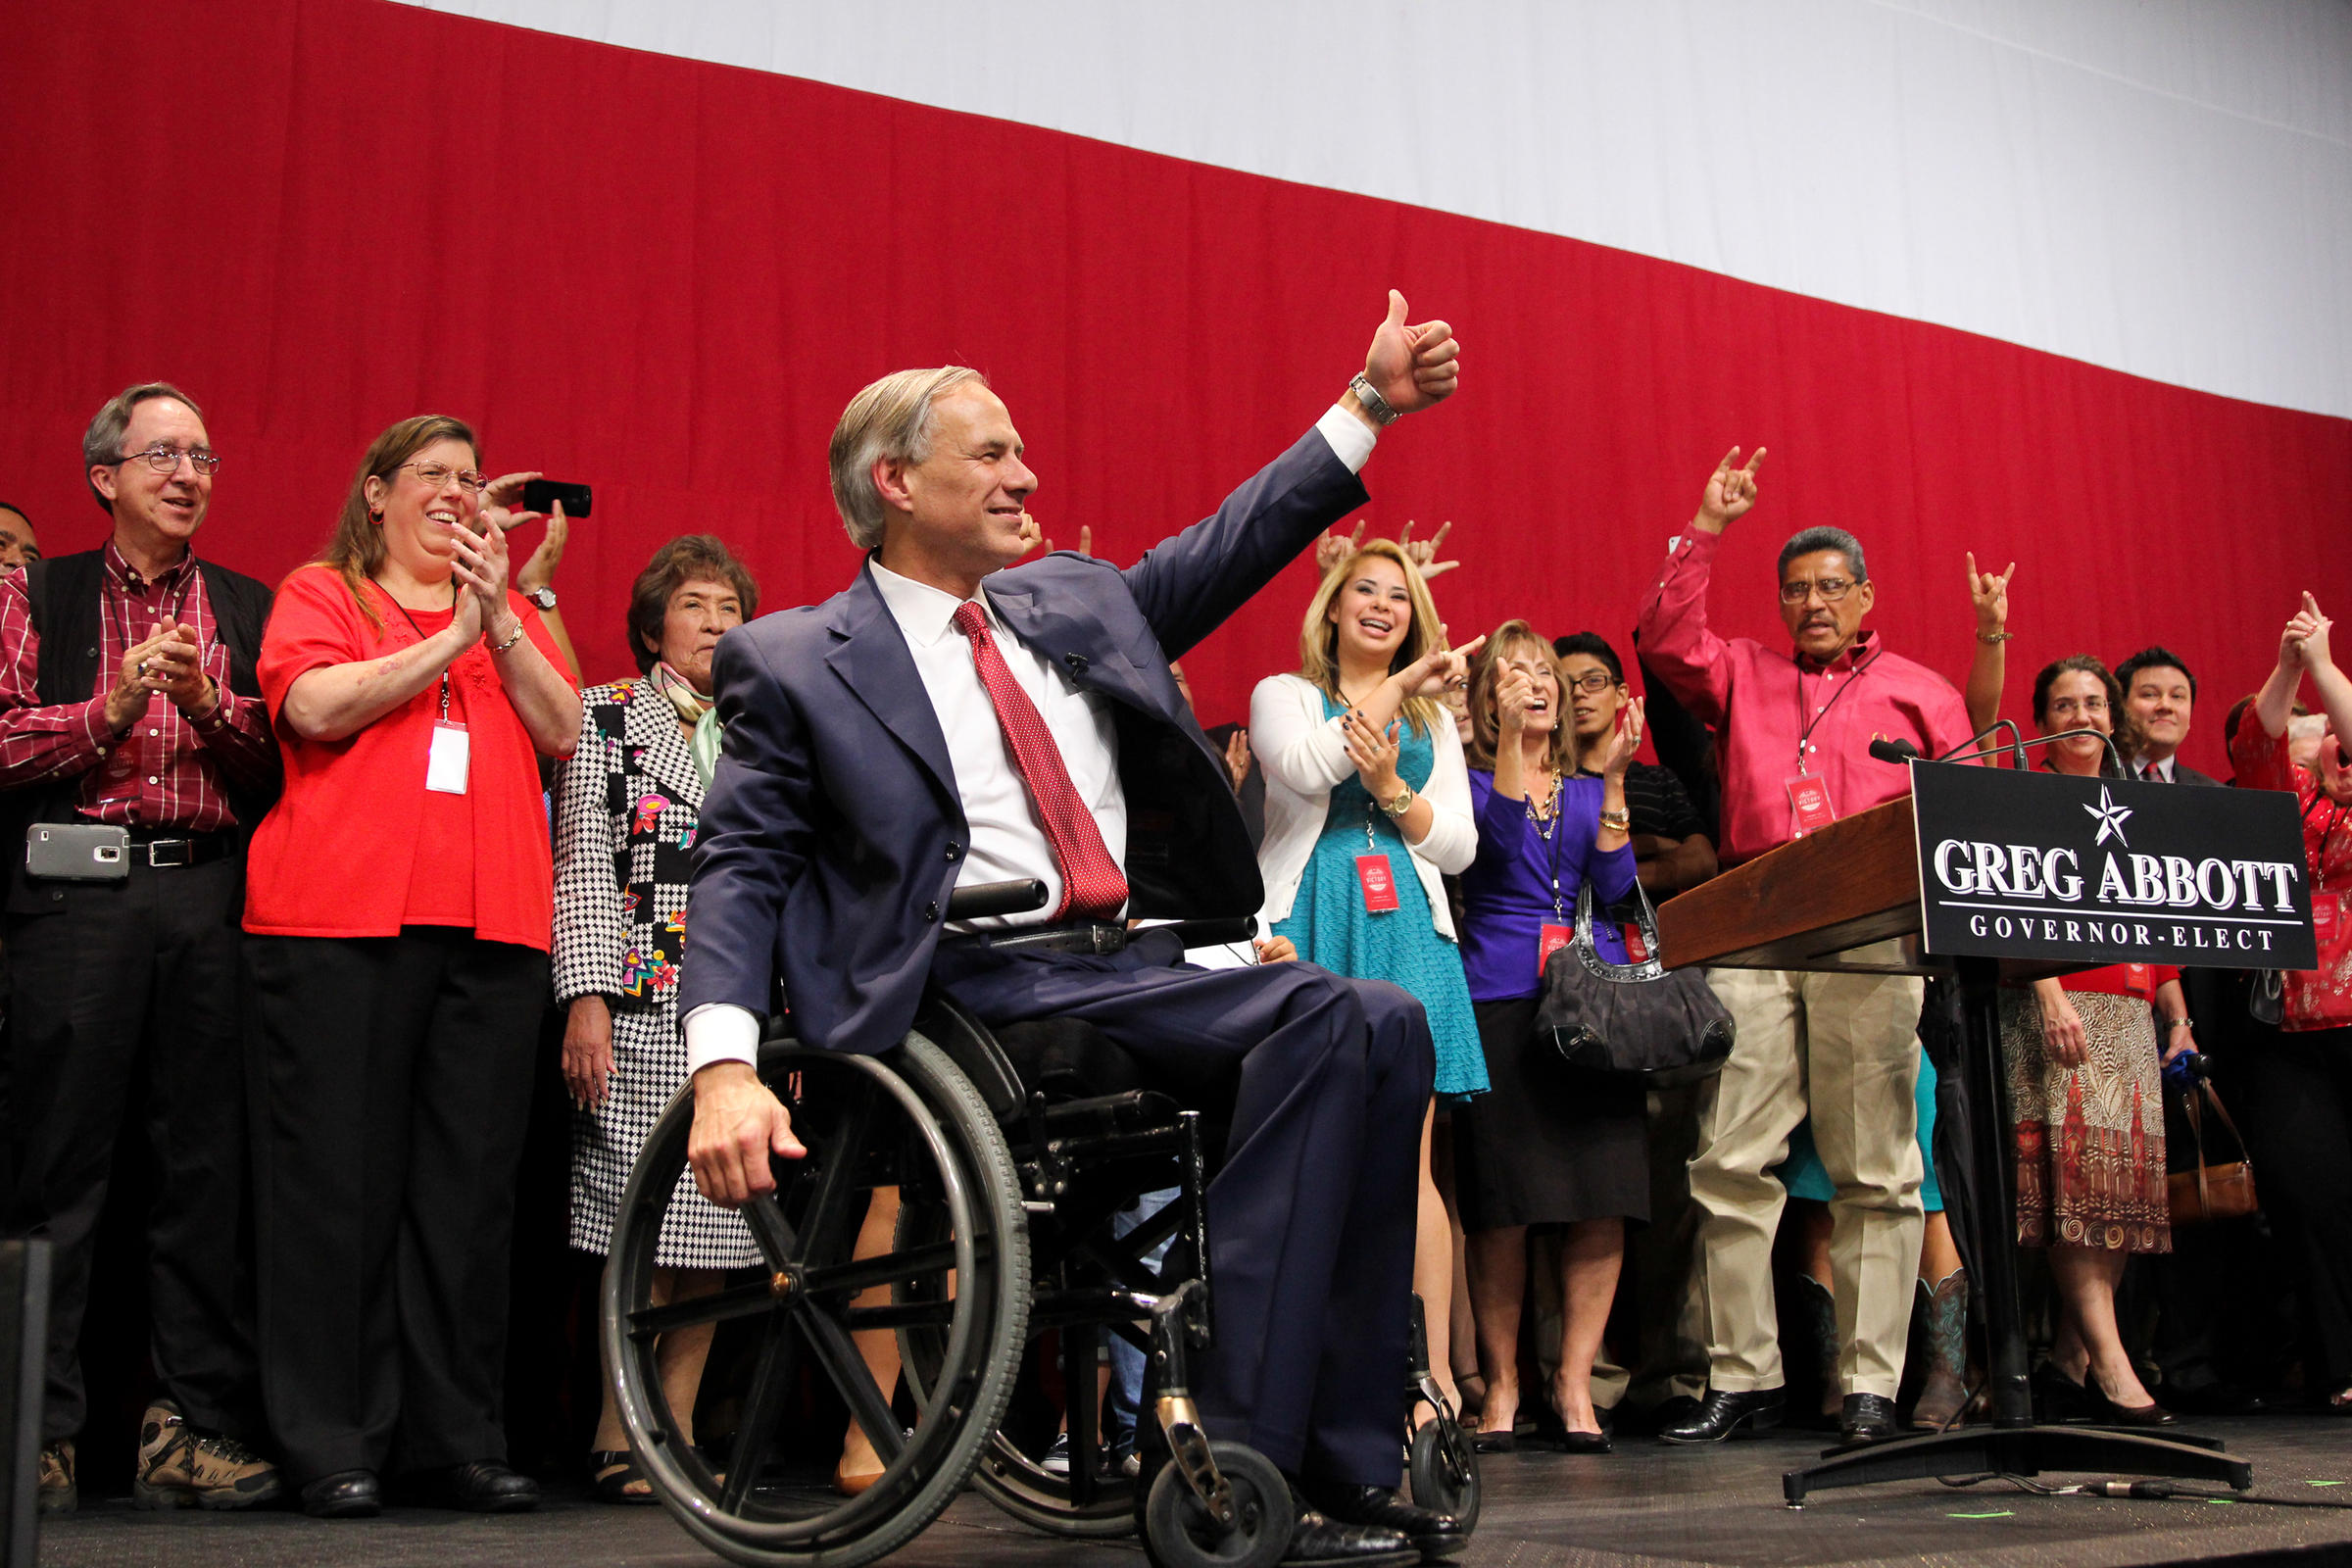 His fellow republicans they swept statewide offices on election day